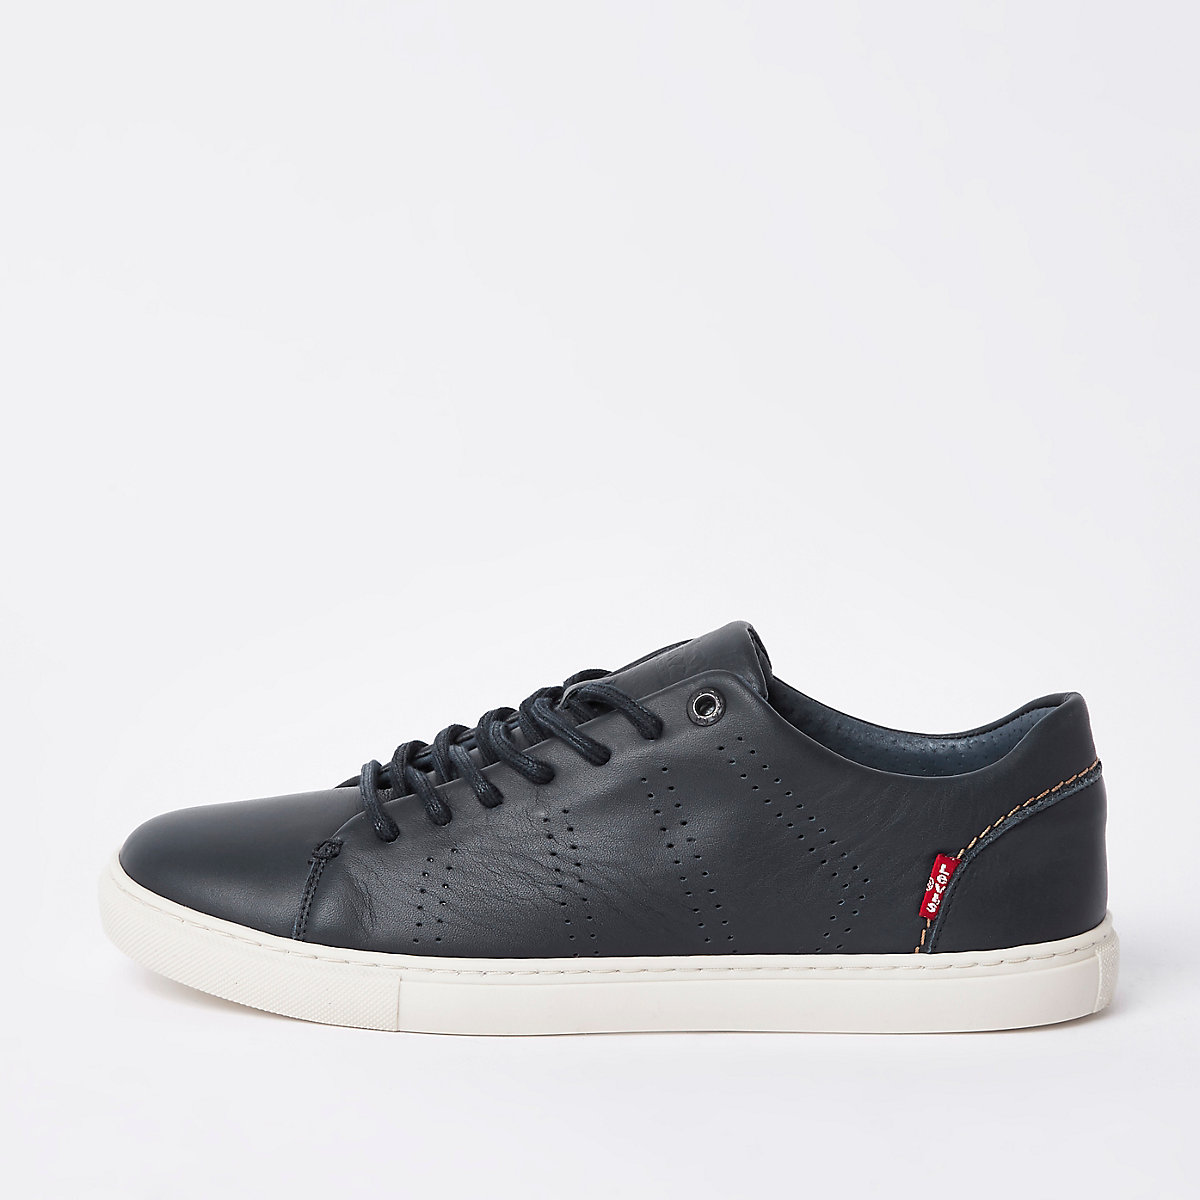 Levi's navy leather lace-up trainers